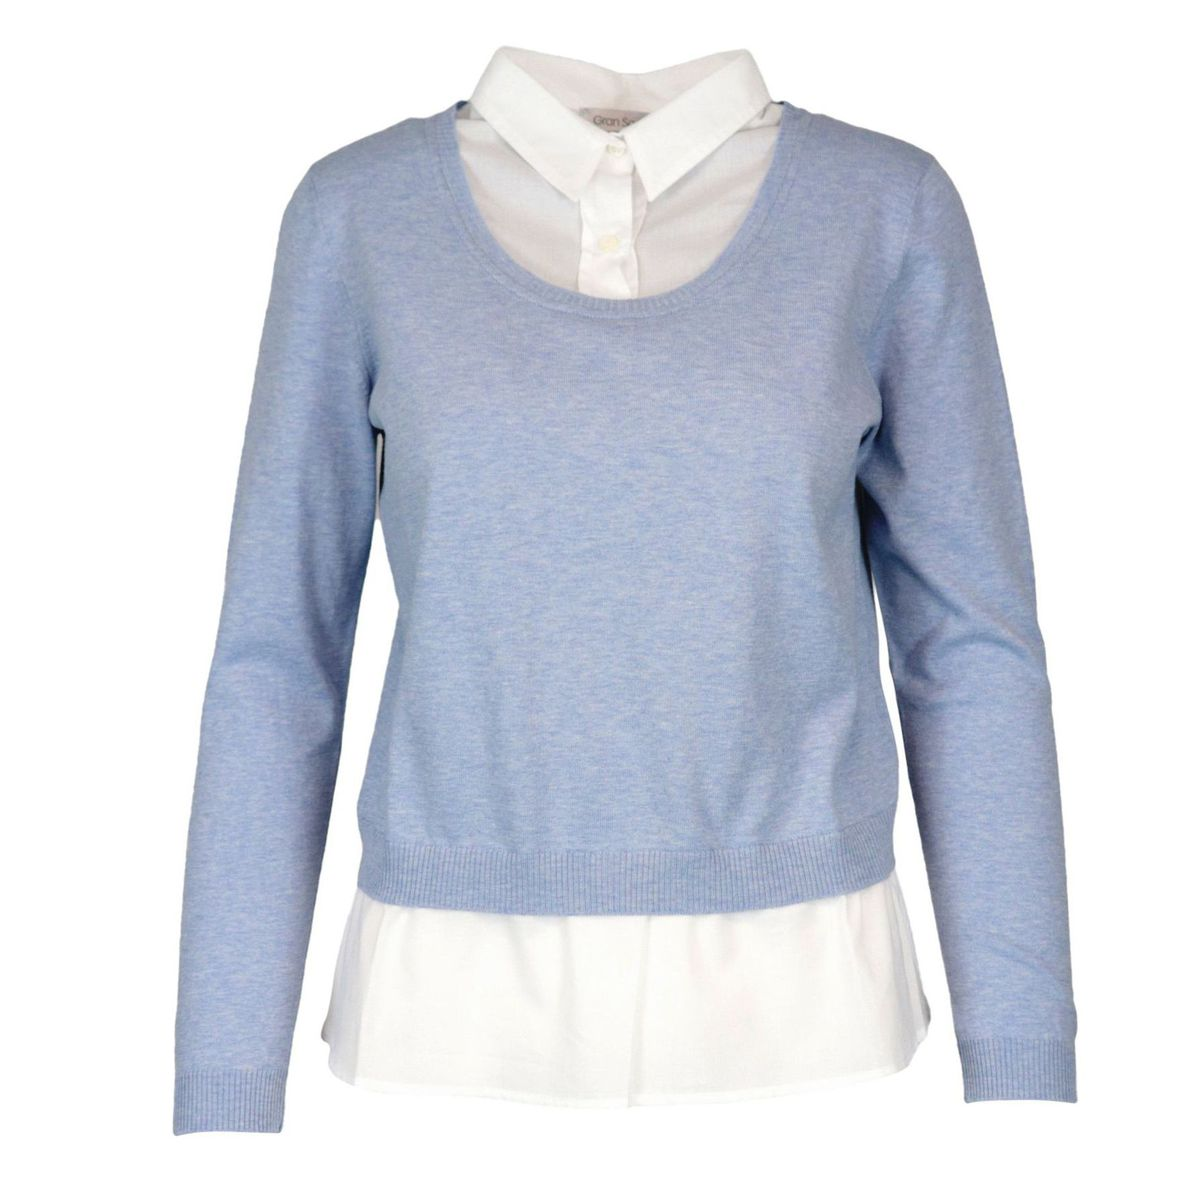 Cotton yarn sweater with integrated shirt Light blue Gran Sasso